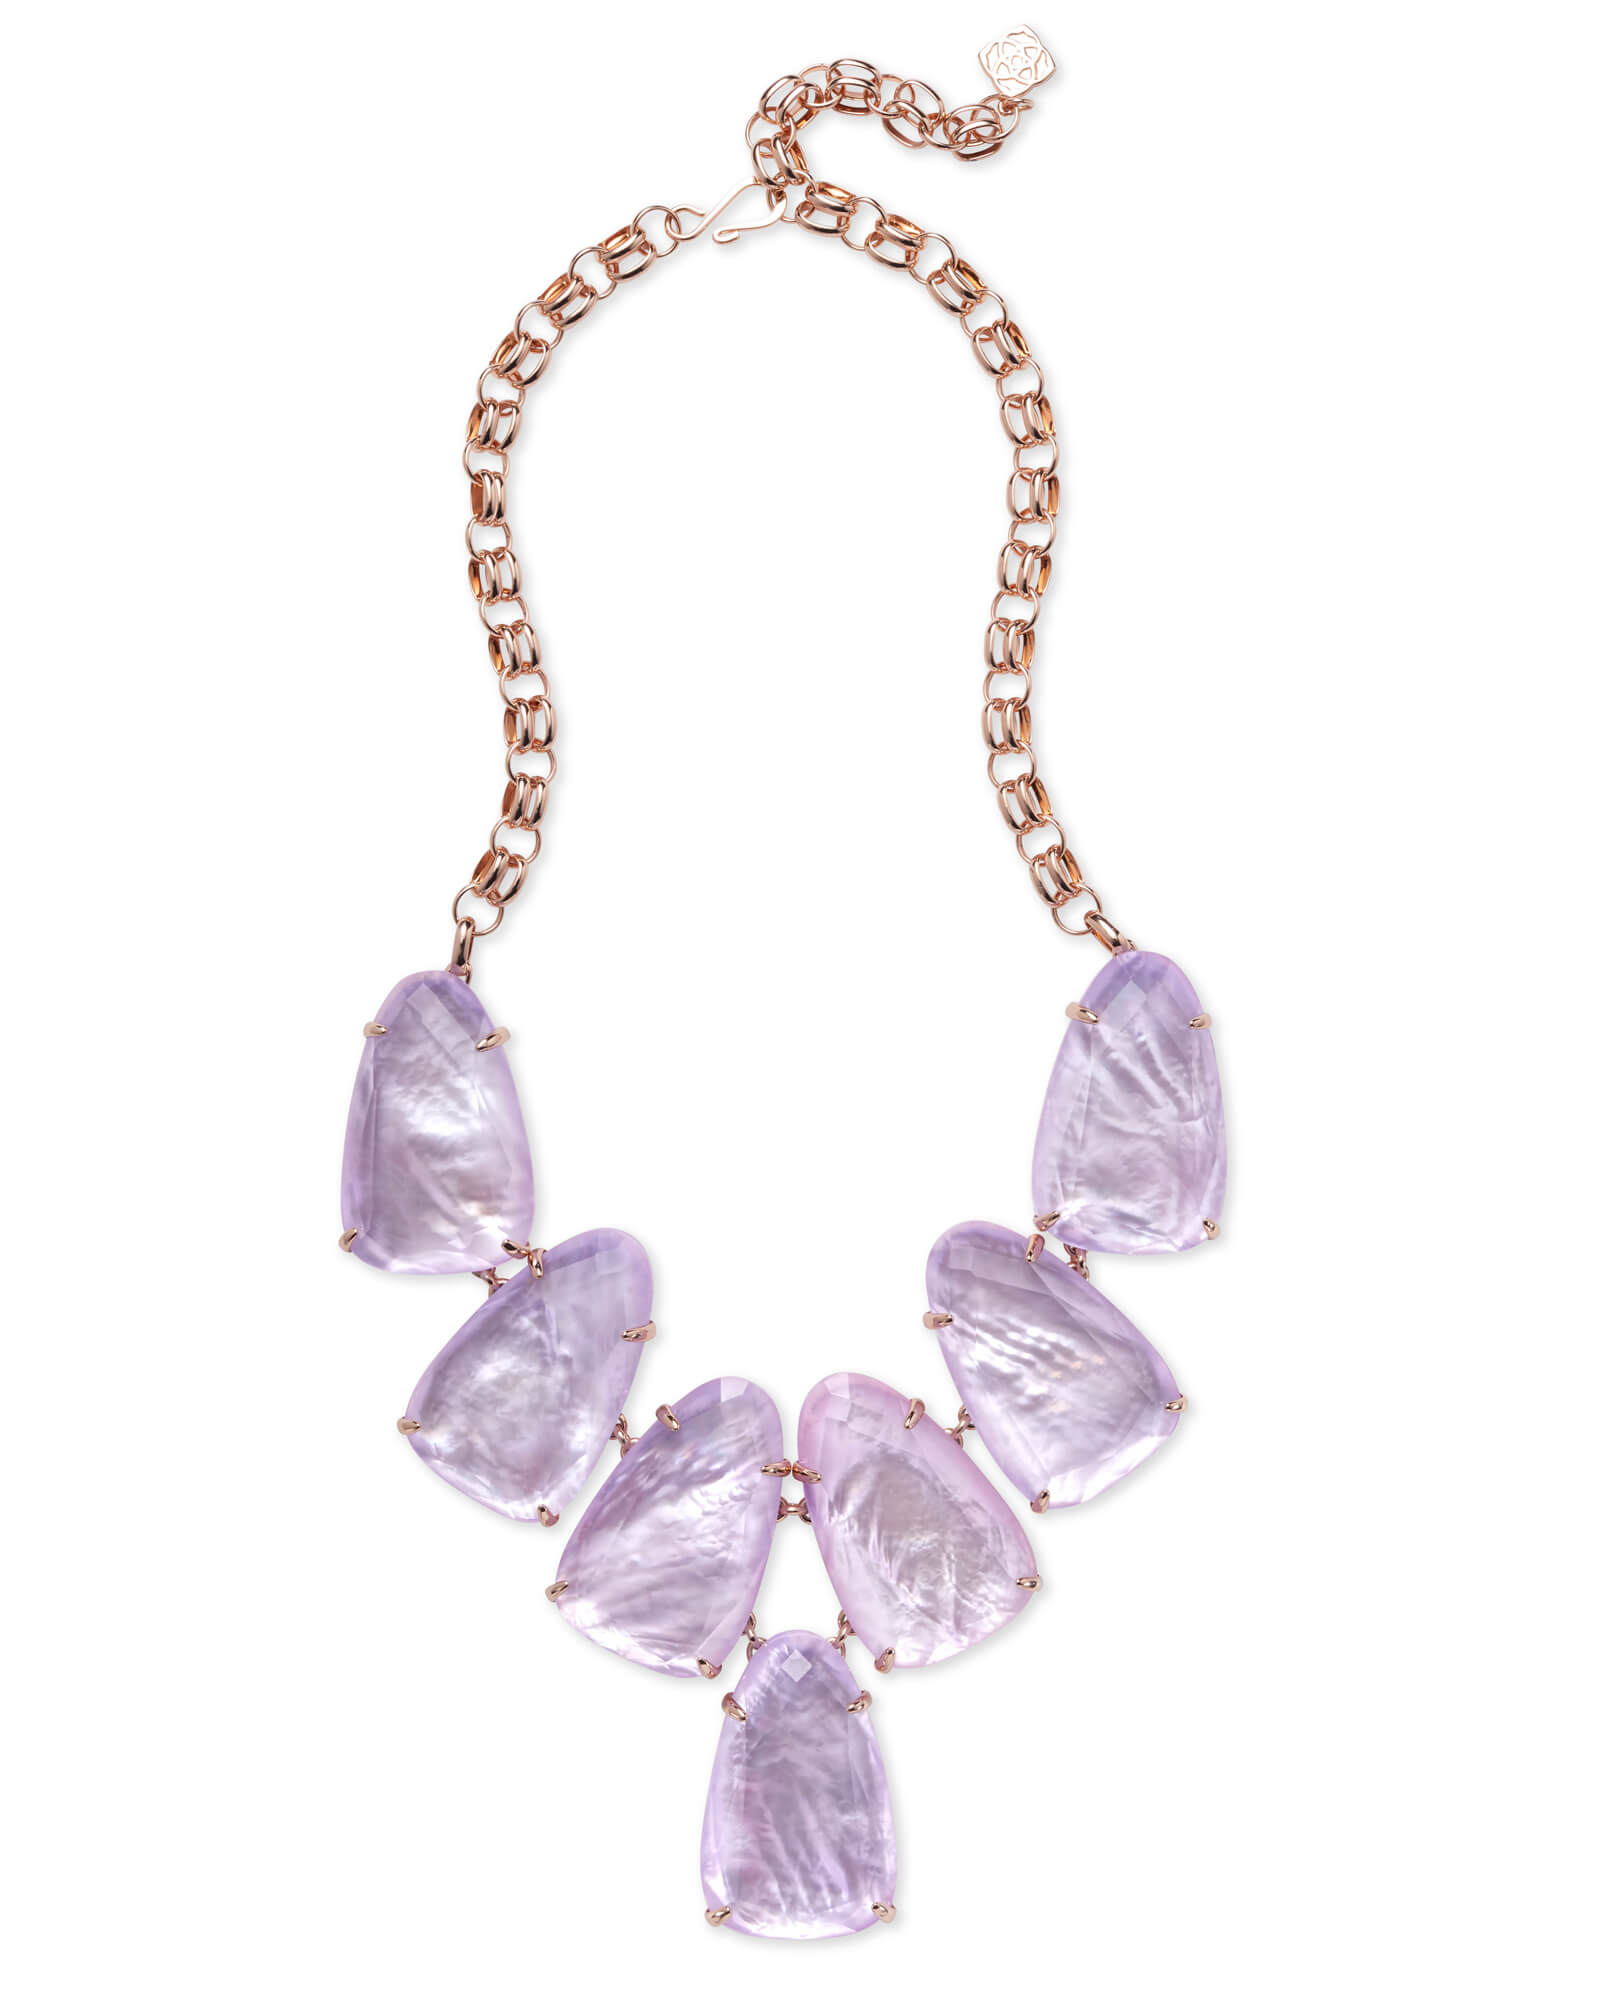 Harlow Rose Gold Statement Necklace in Lilac Mother-of-Pearl